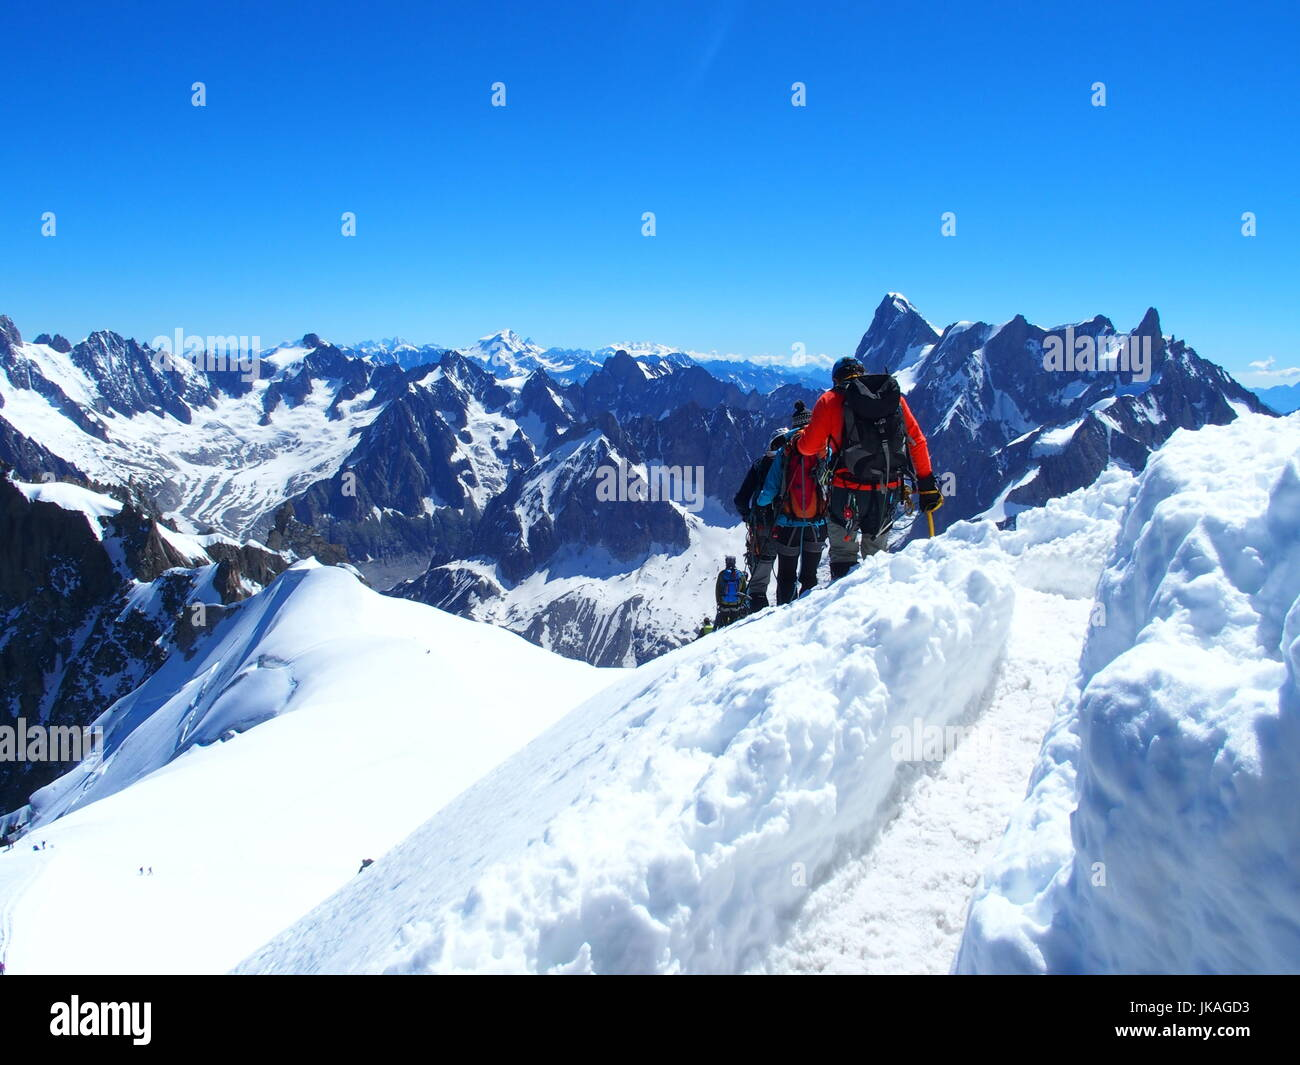 Four alpinists and mountaineer climber on AIGUILLE DU MIDI, CHAMONIX MONT BLANC french ALPS, top alpine mountains - Stock Image